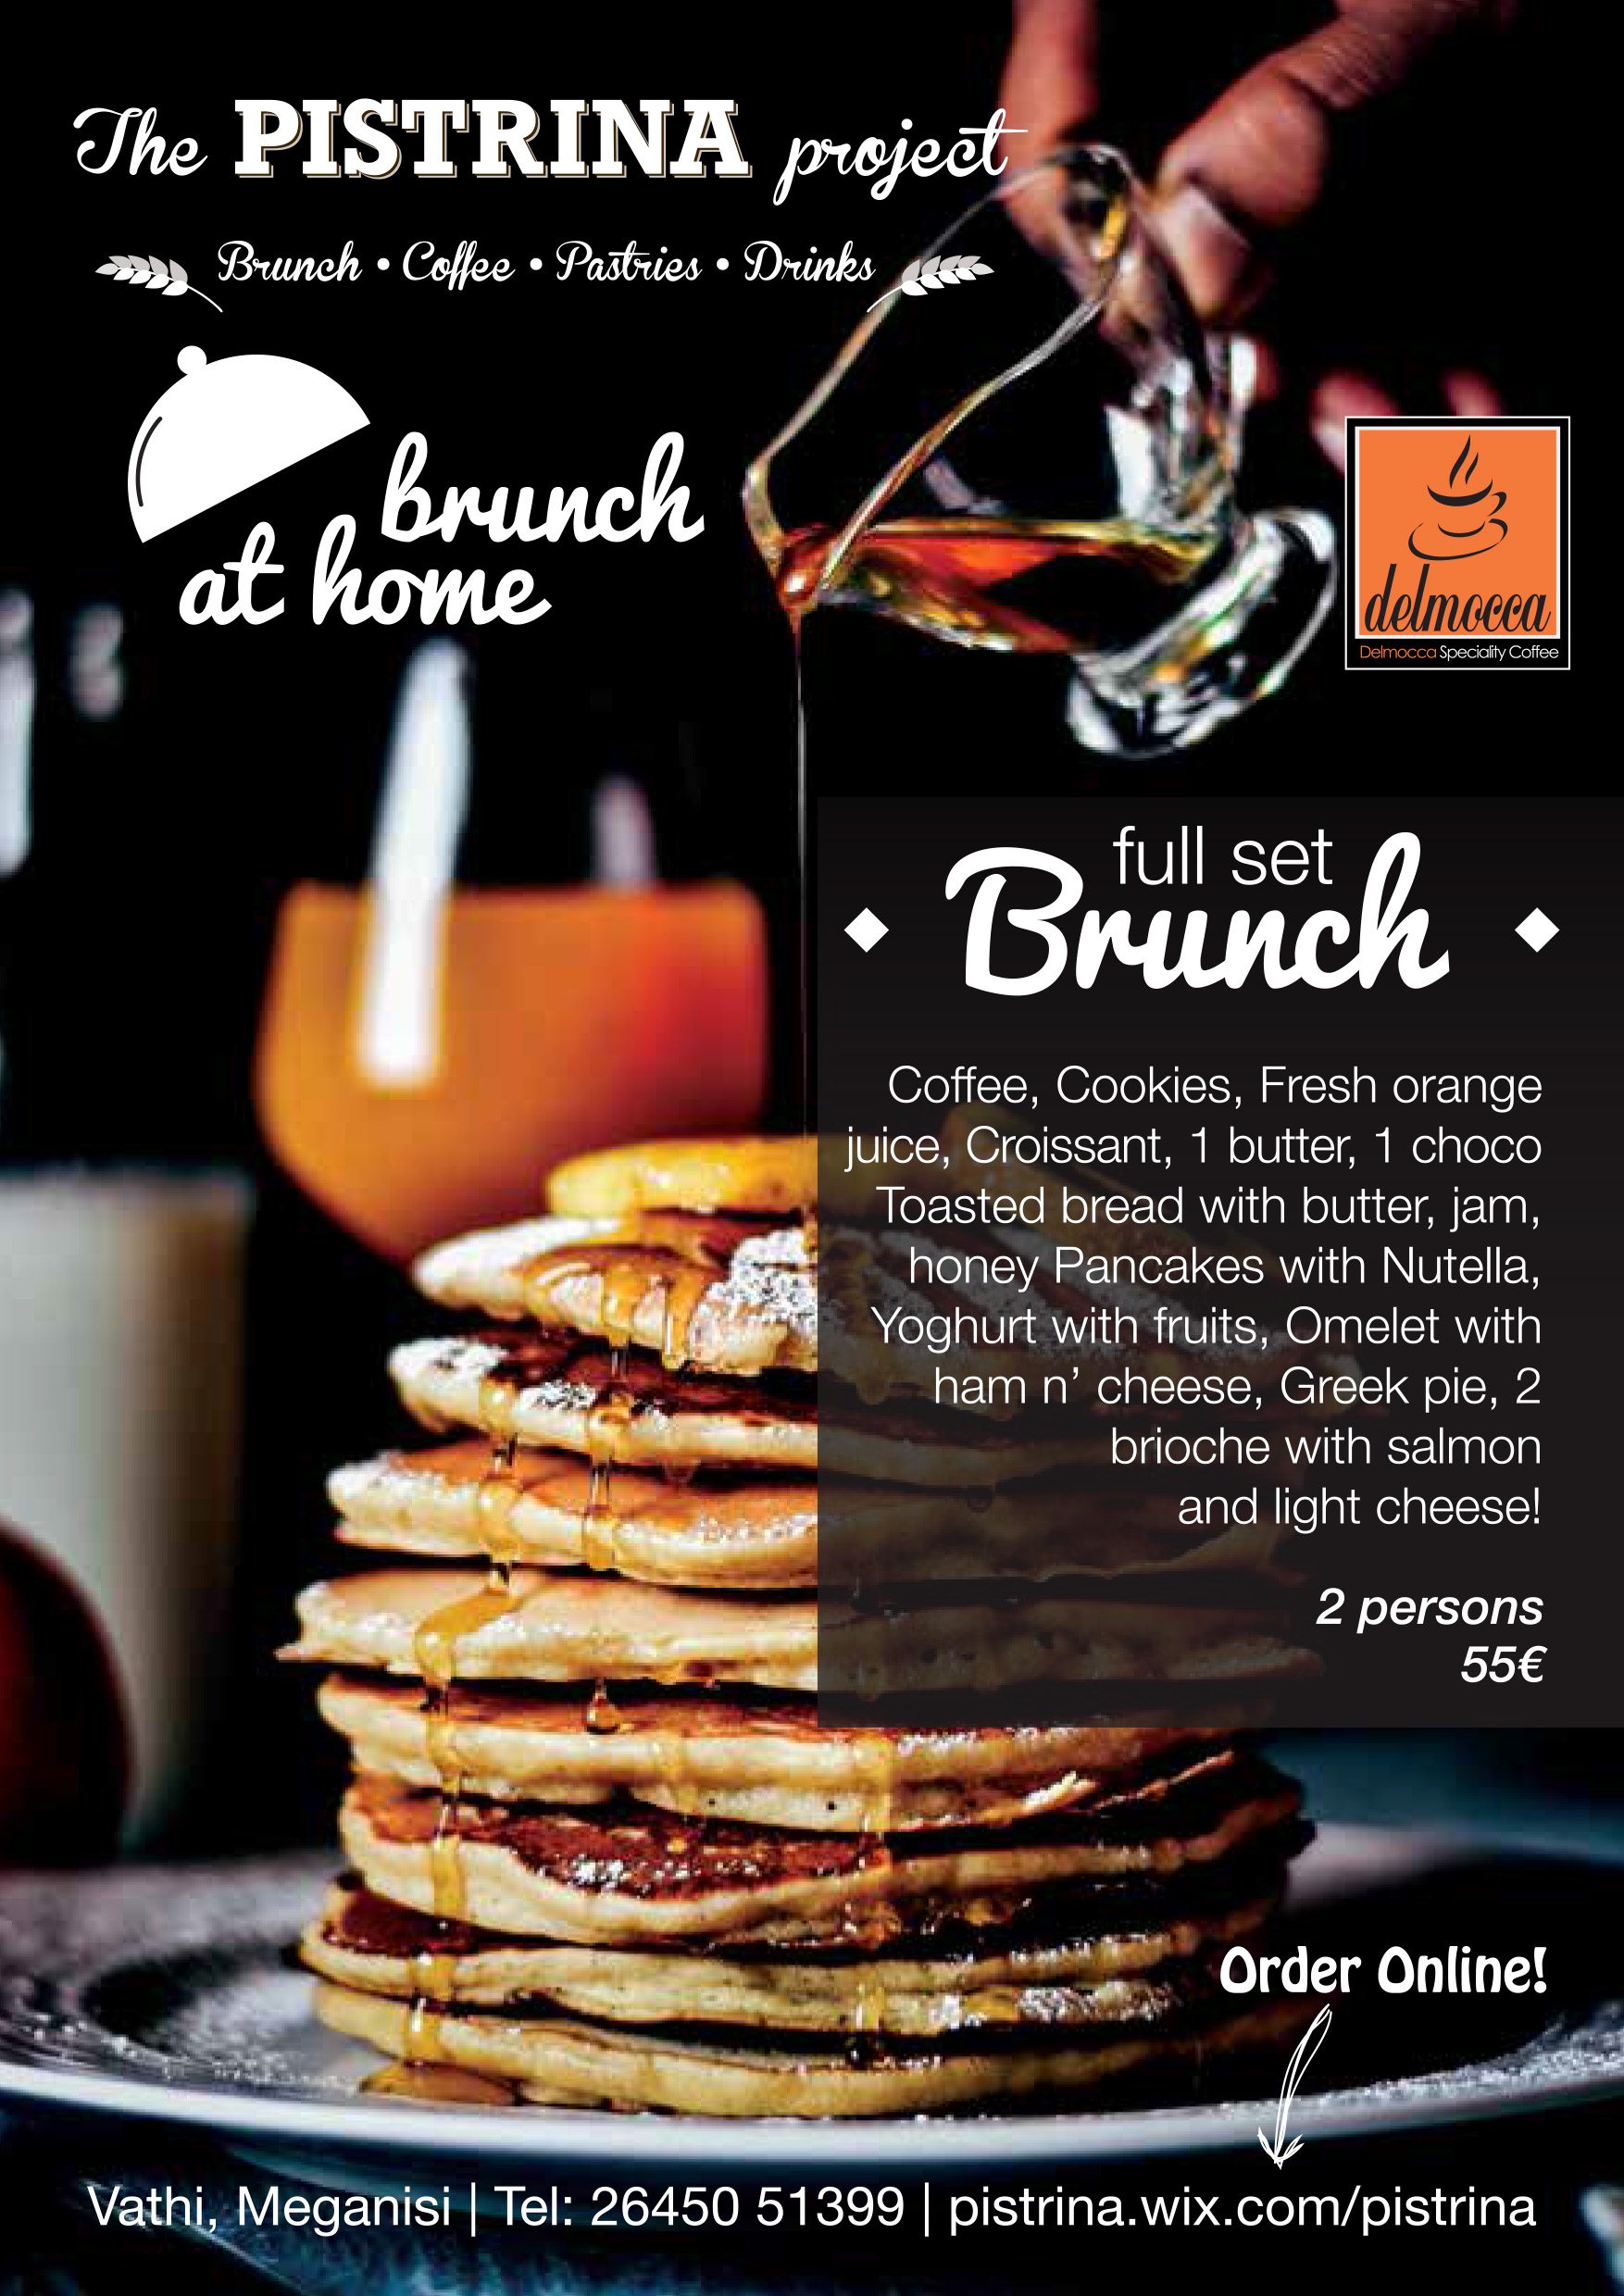 The Pistrina Project - Brunch at home 2